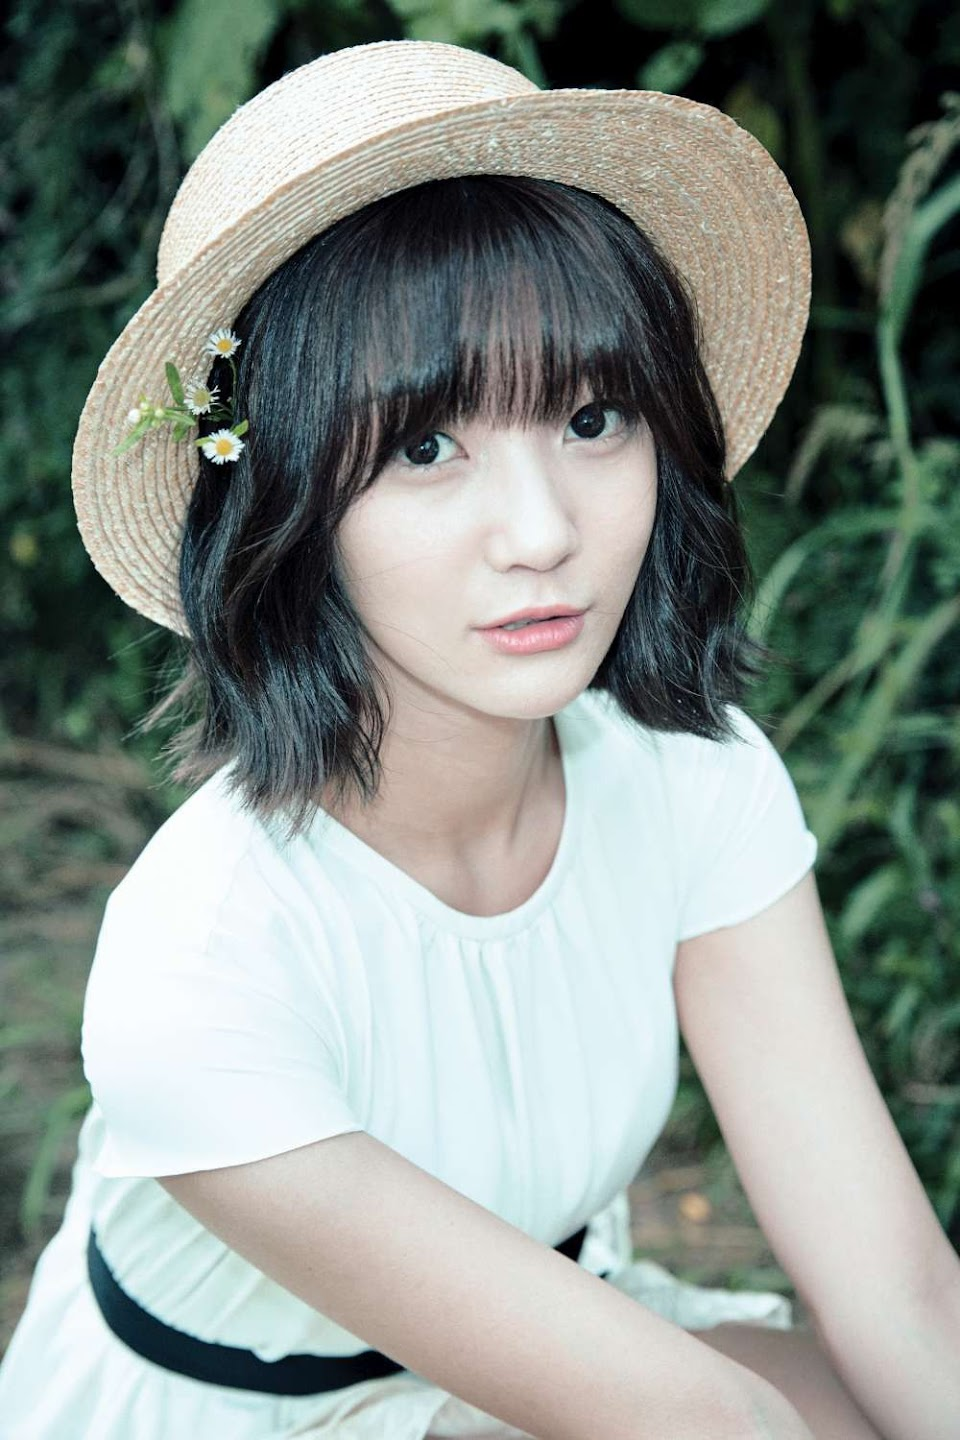 binnie debut wm